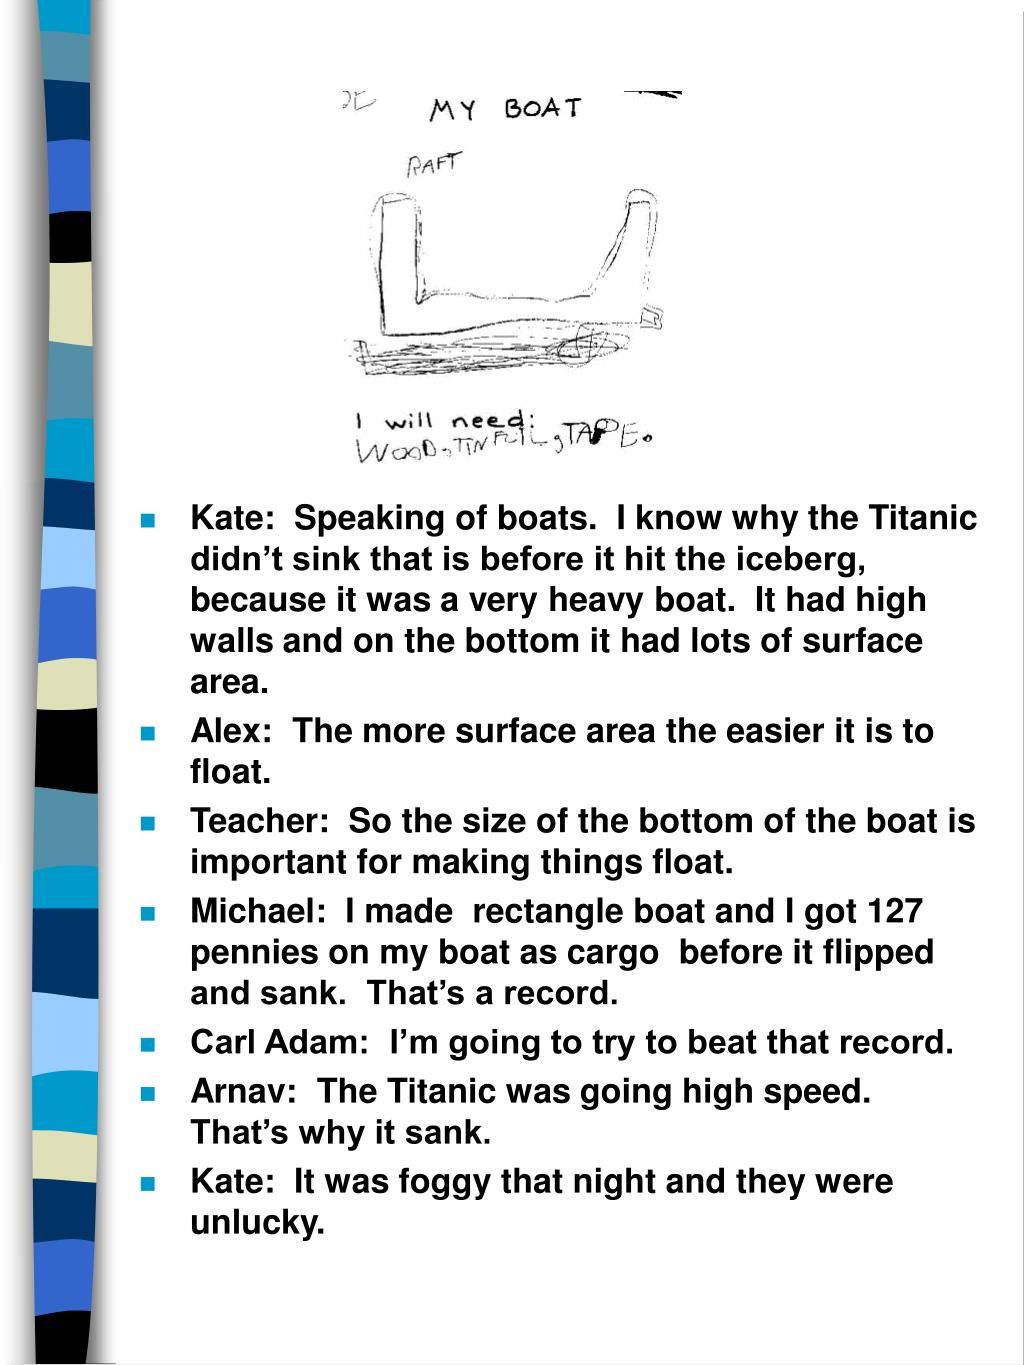 Kate:  Speaking of boats.  I know why the Titanic didn't sink that is before it hit the iceberg, because it was a very heavy boat.  It had high walls and on the bottom it had lots of surface area.